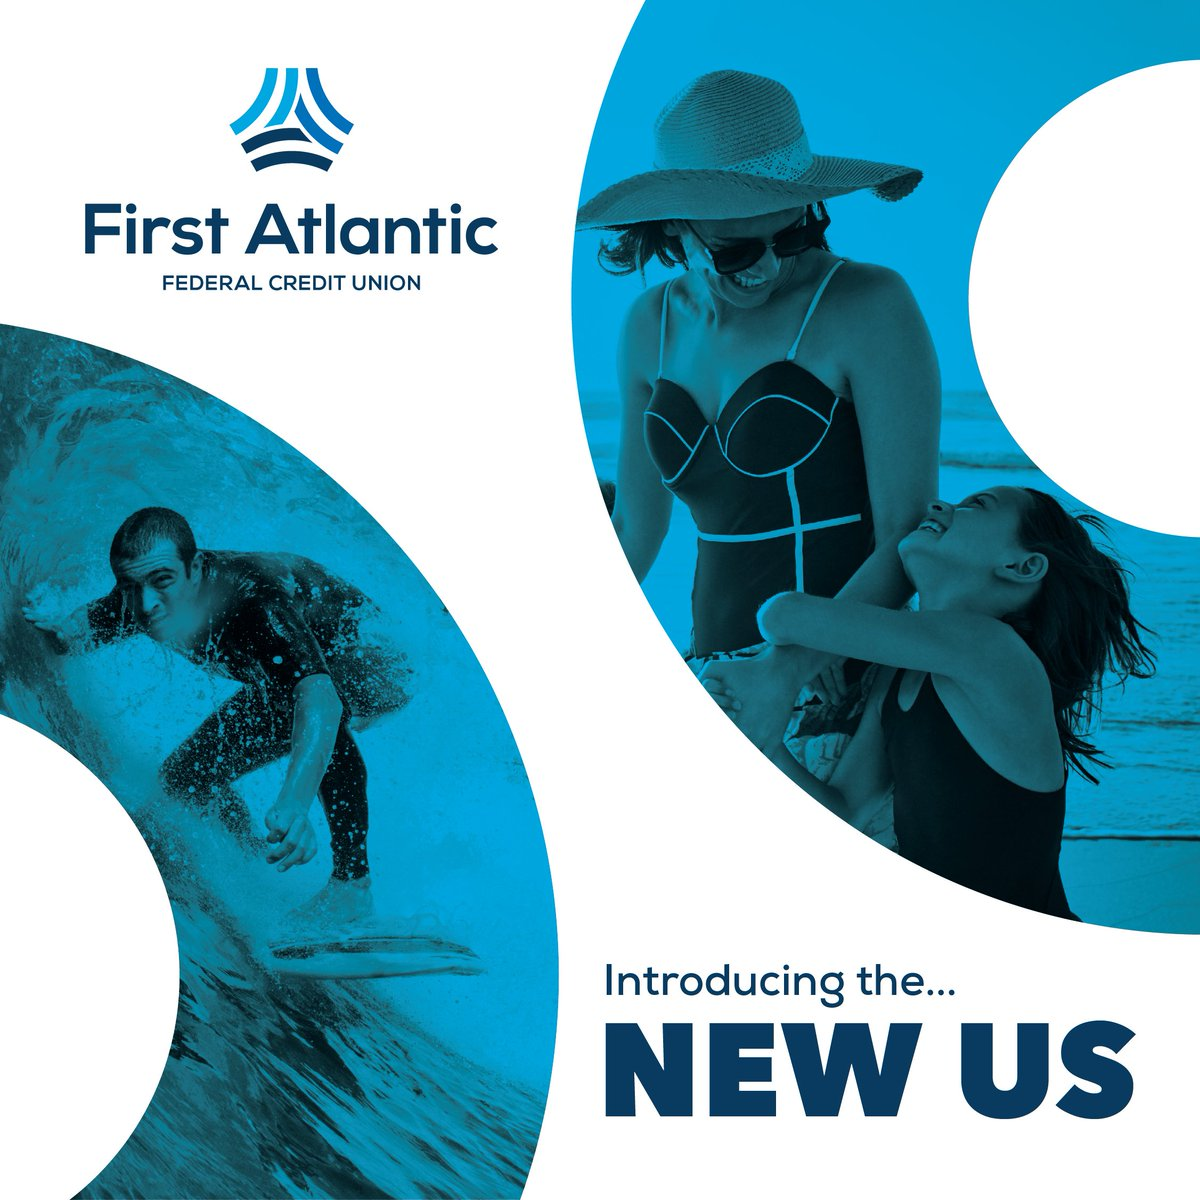 Atlantic Federal Credit Union >> First Atlantic Federal Credit Union Firstatlanticcu Twitter